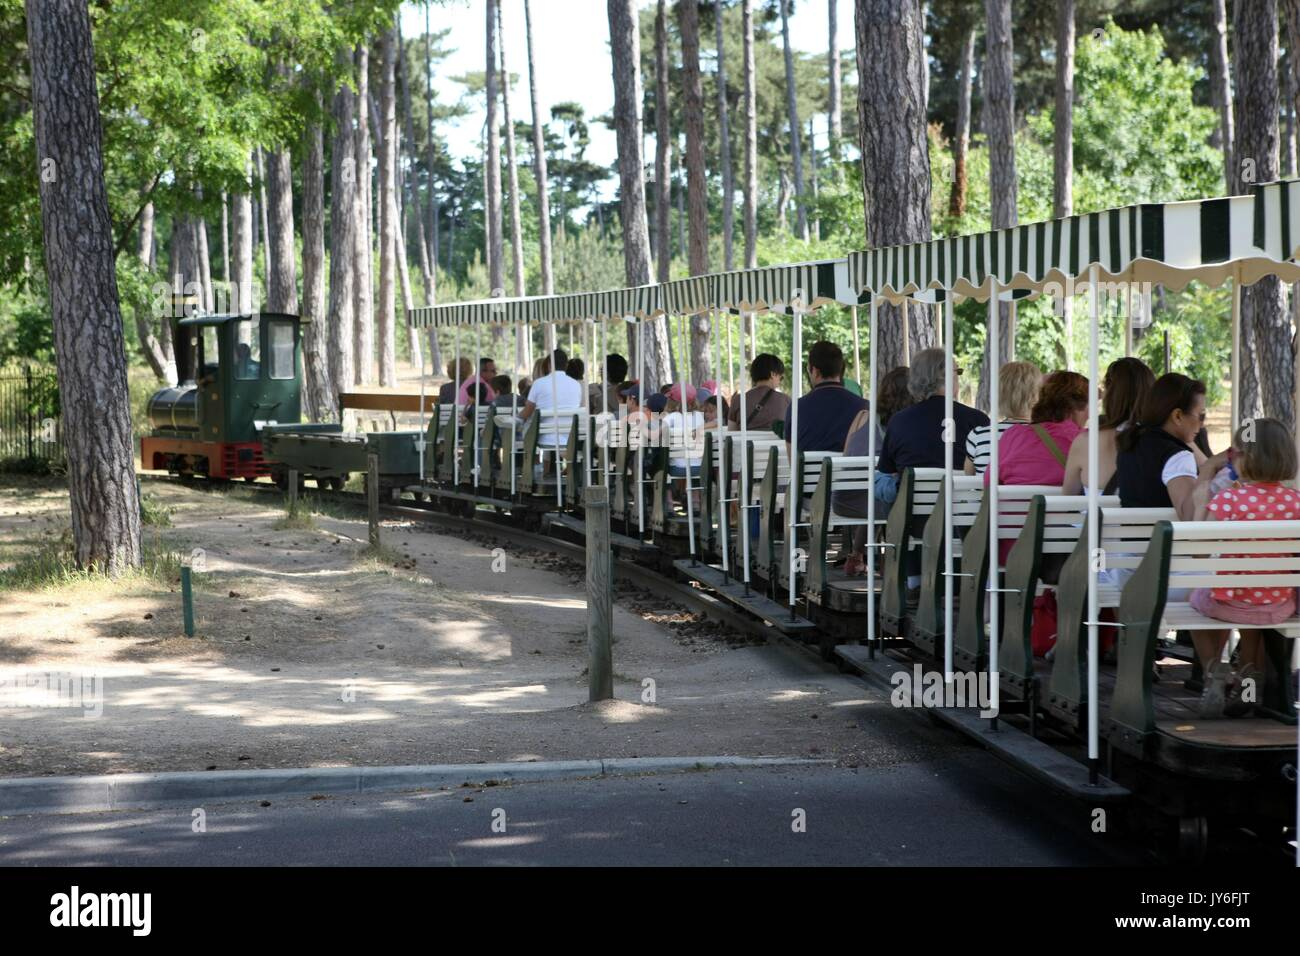 Petit train stock photos petit train stock images alamy for Bois de boulogne jardin d acclimatation